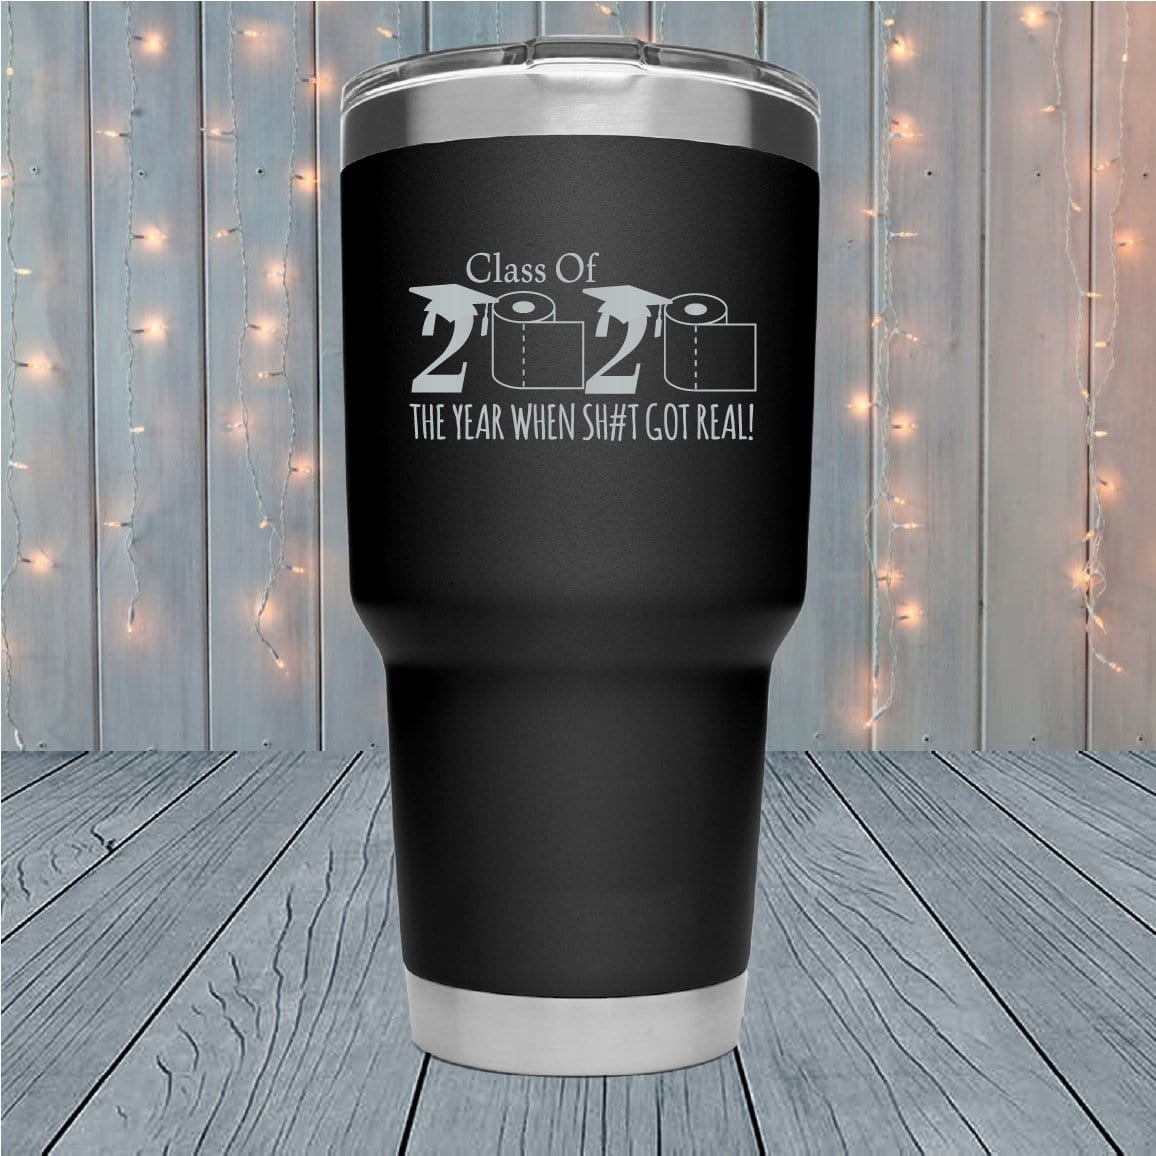 Class Of 2020 Laser Engraved Tumblers